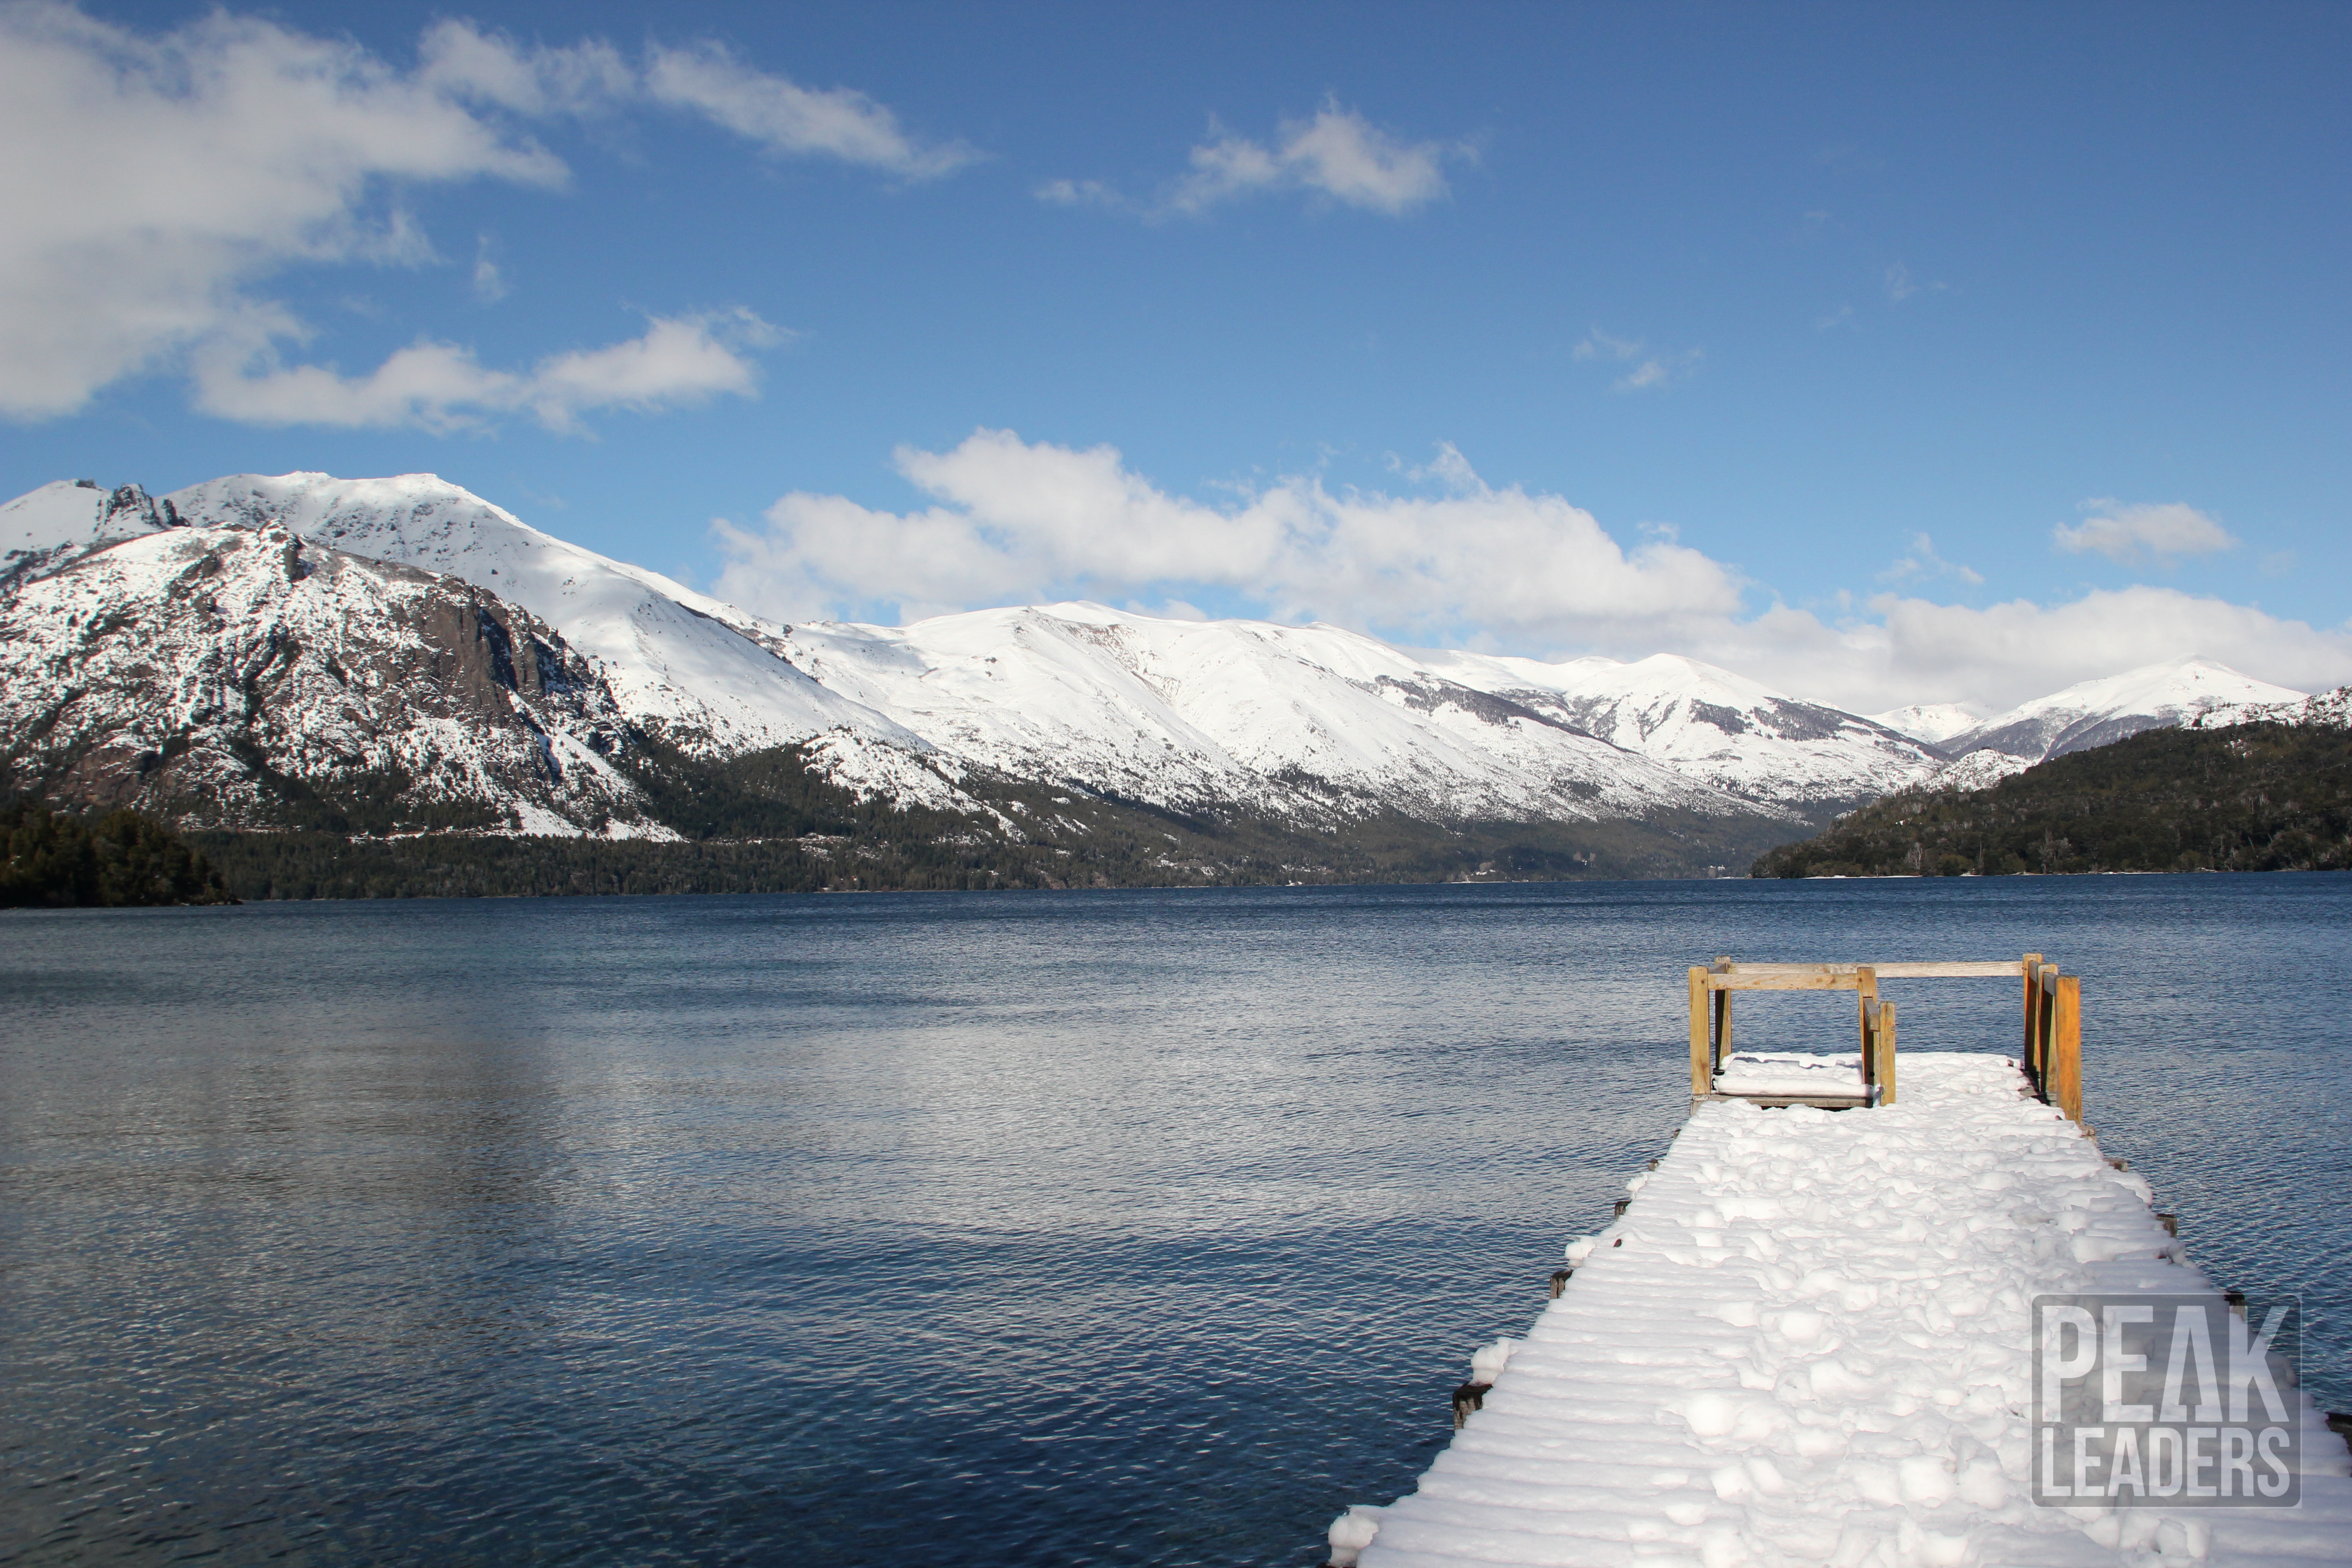 Lago Guitierrez looking like a picture! What Ski Instructor Graduate dreams are made of